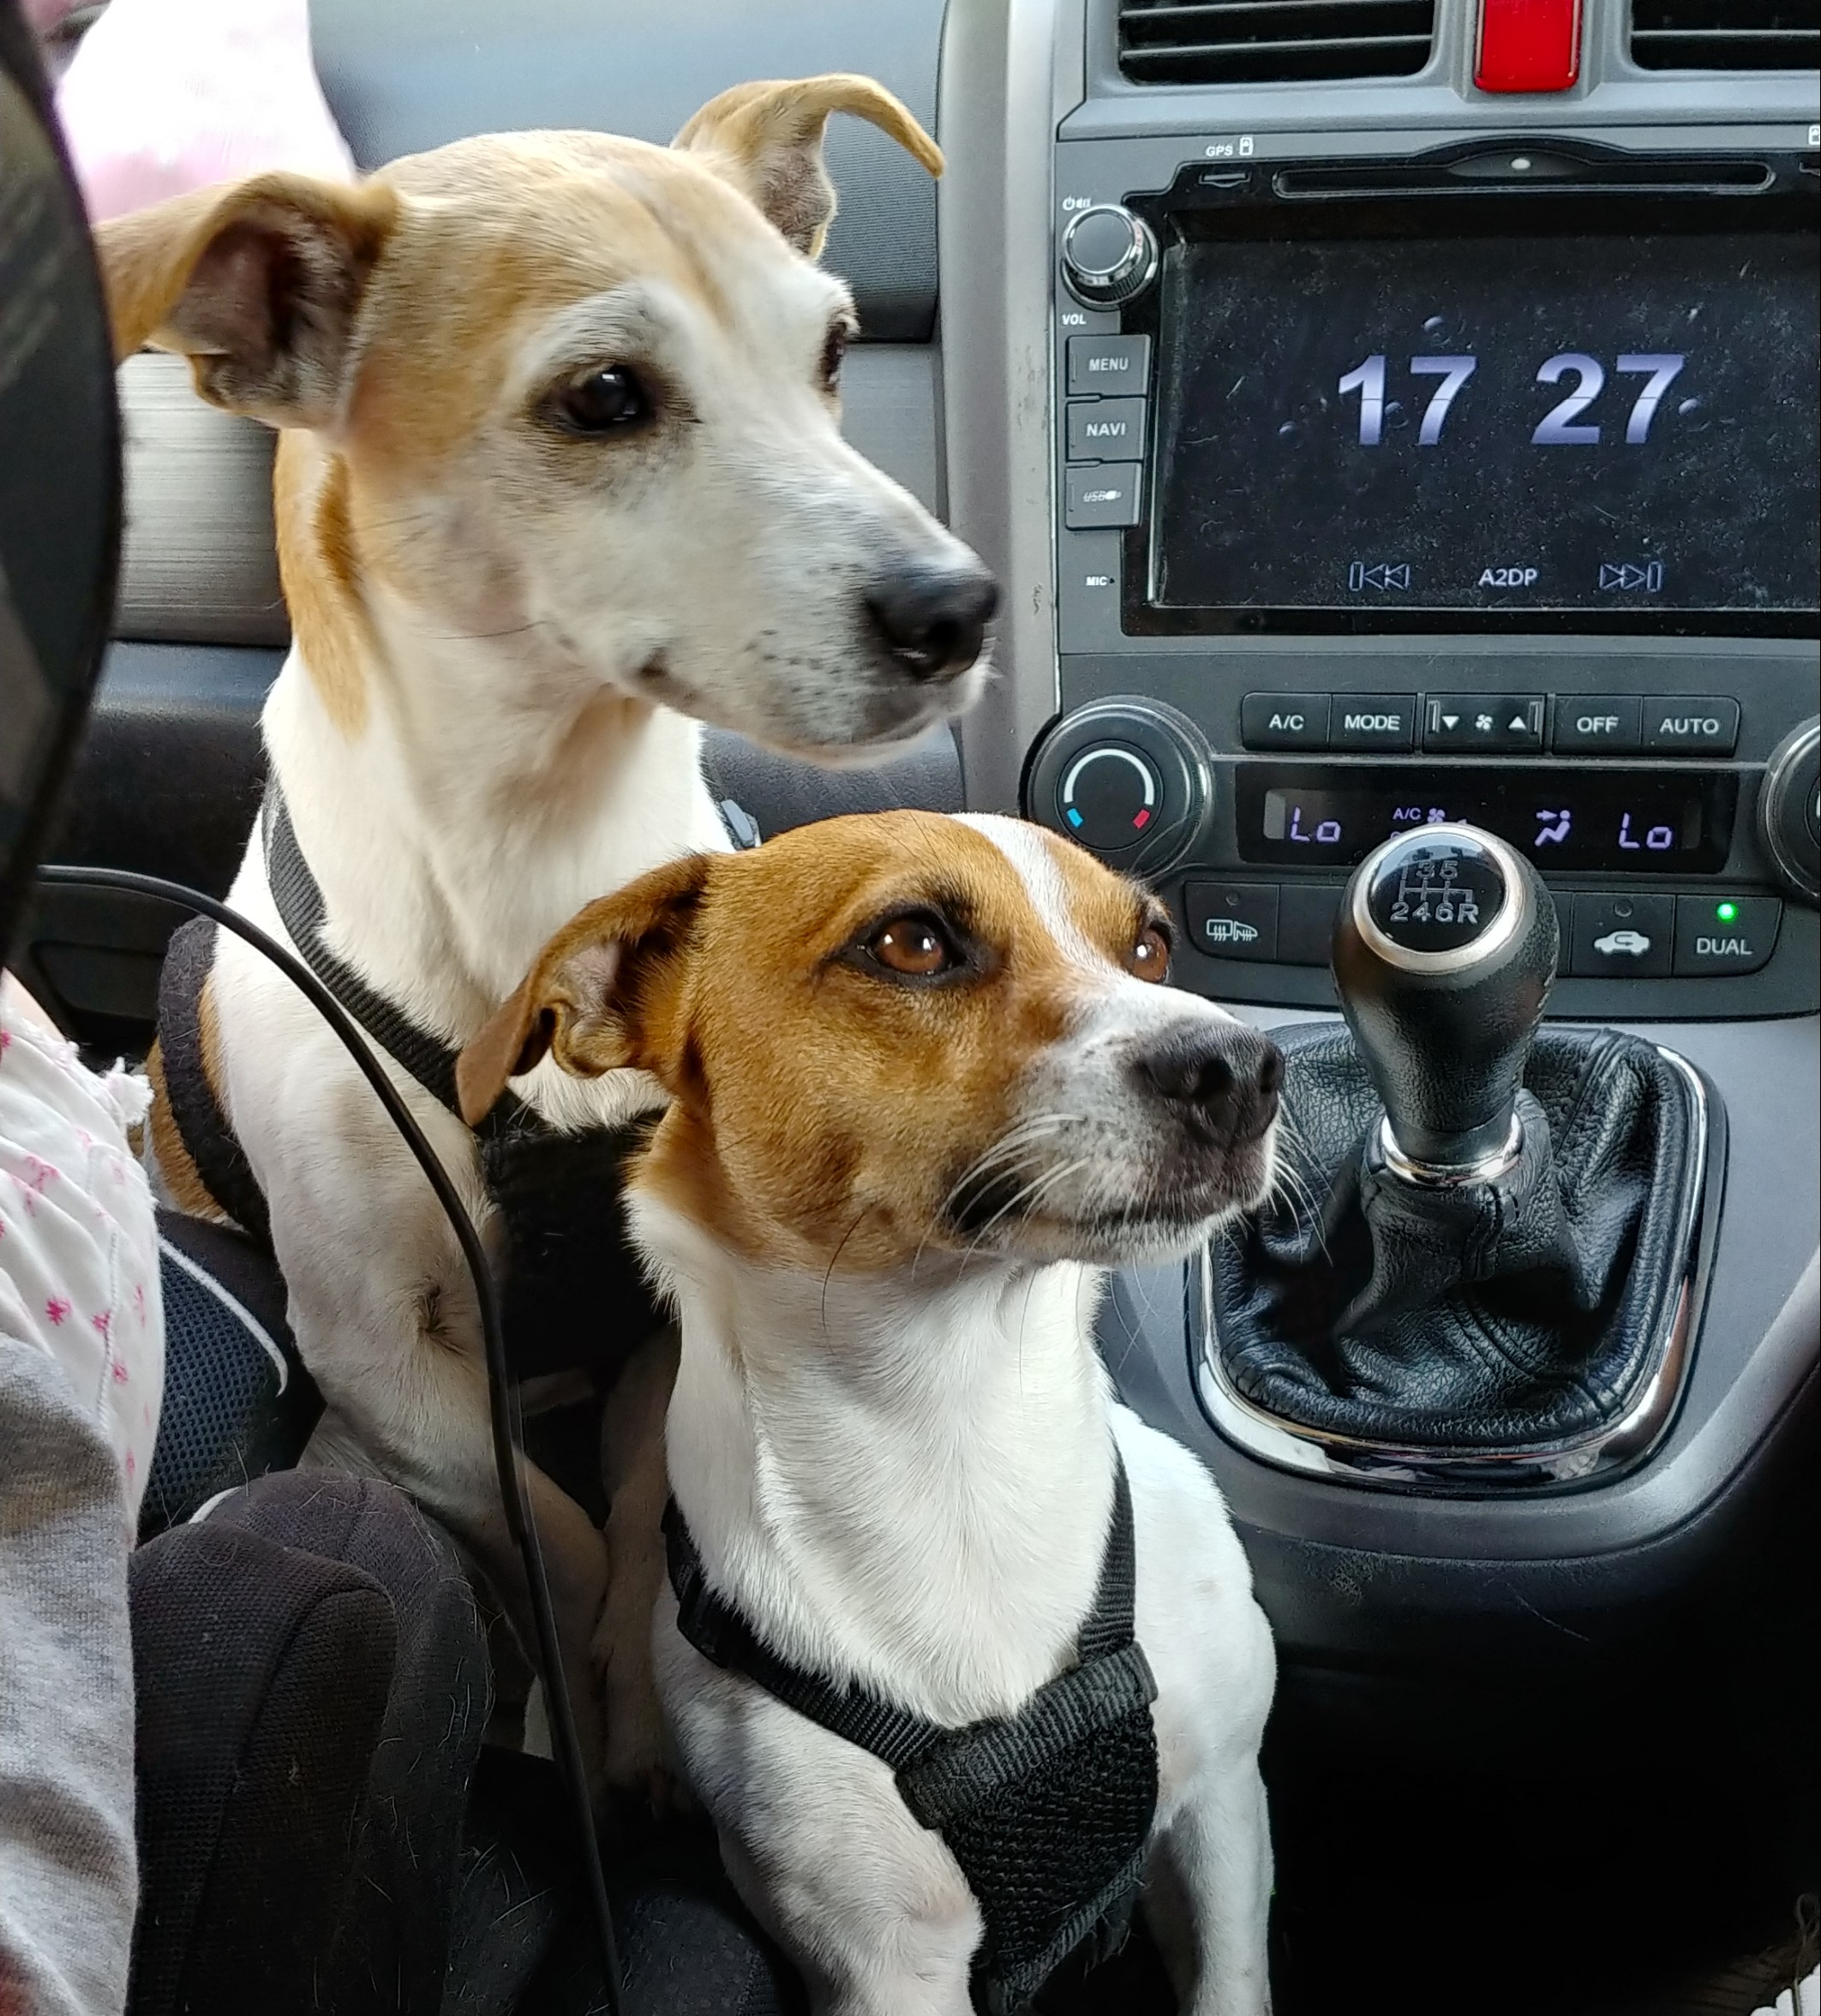 We need a bigger car.